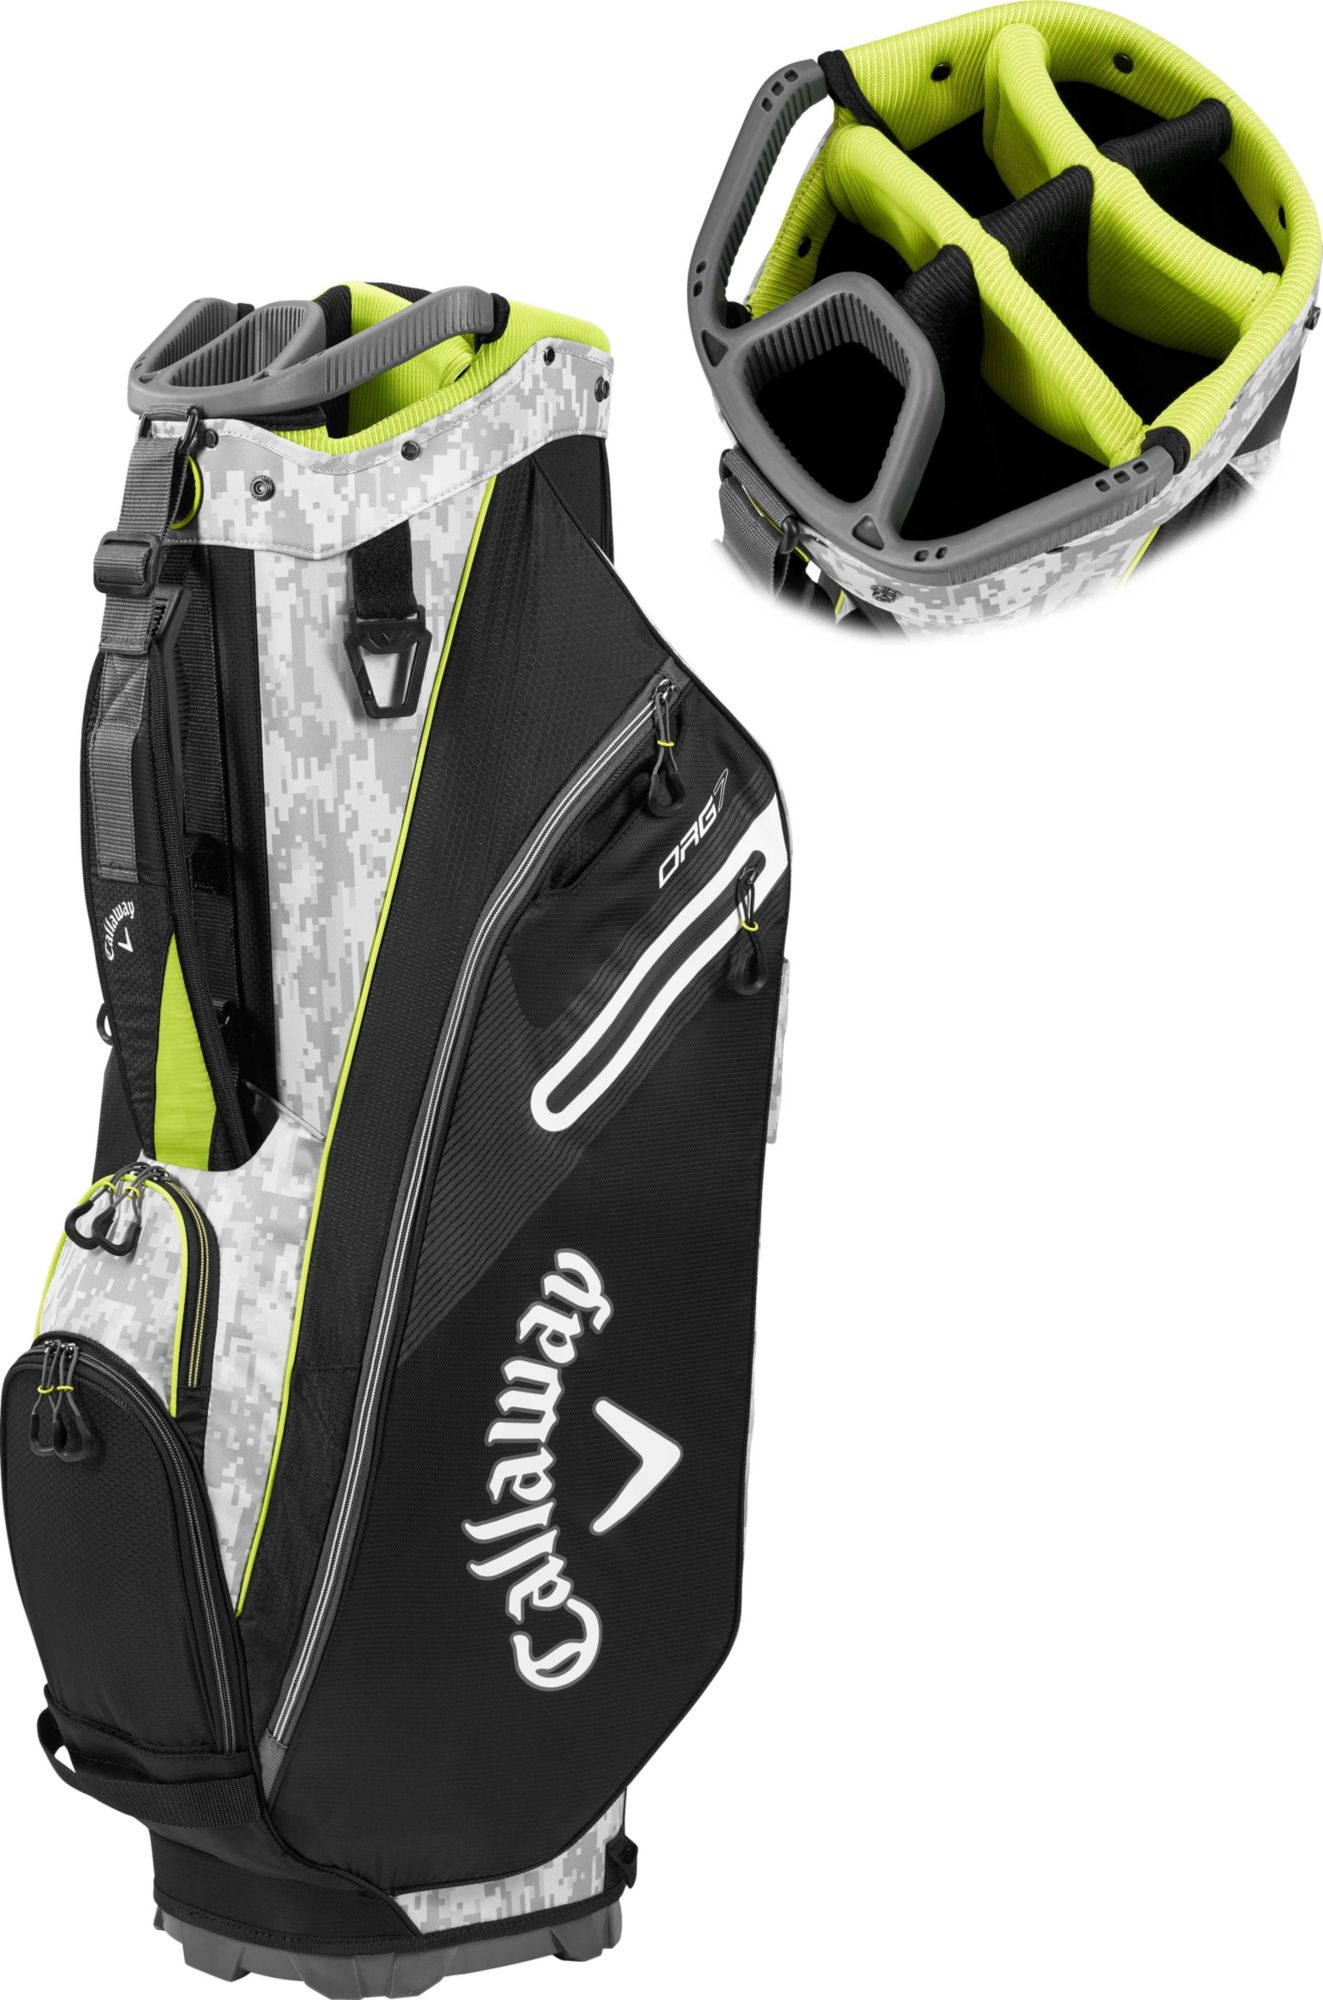 Callaway 2020 Org 7 Cart Golf Bag, Men's, Size: One size